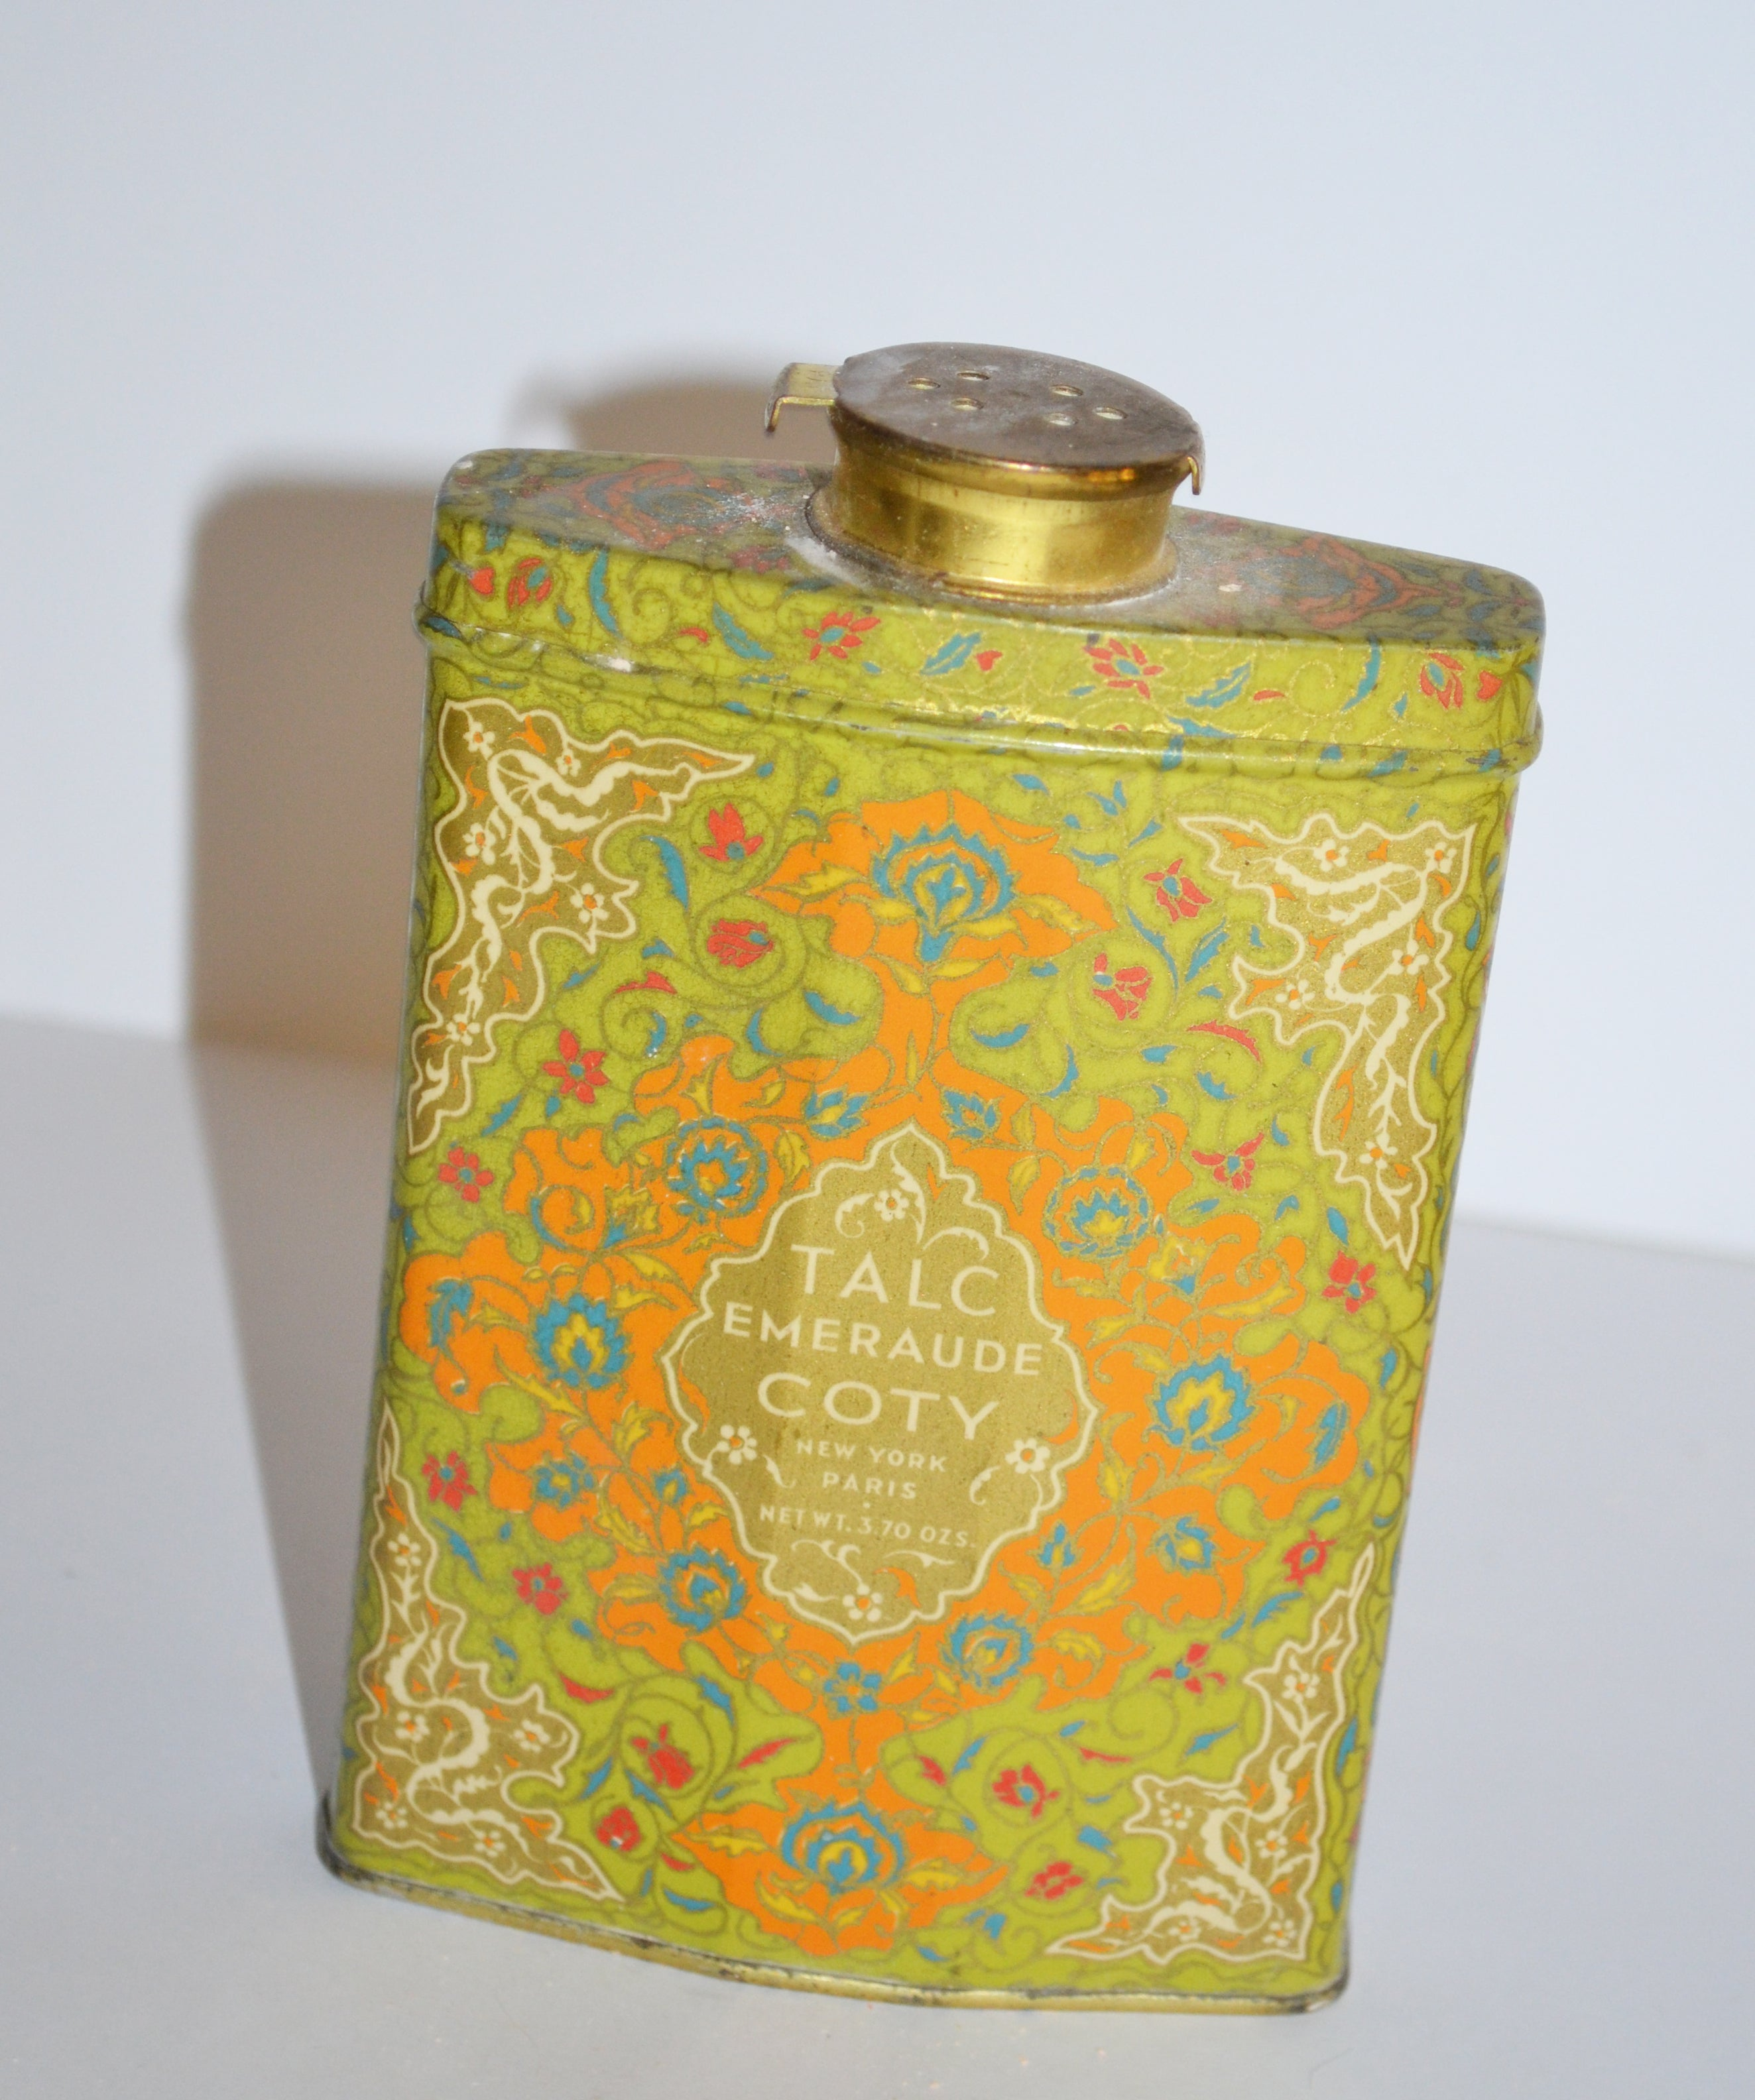 Vintage Emeraude Talc Tin By Coty